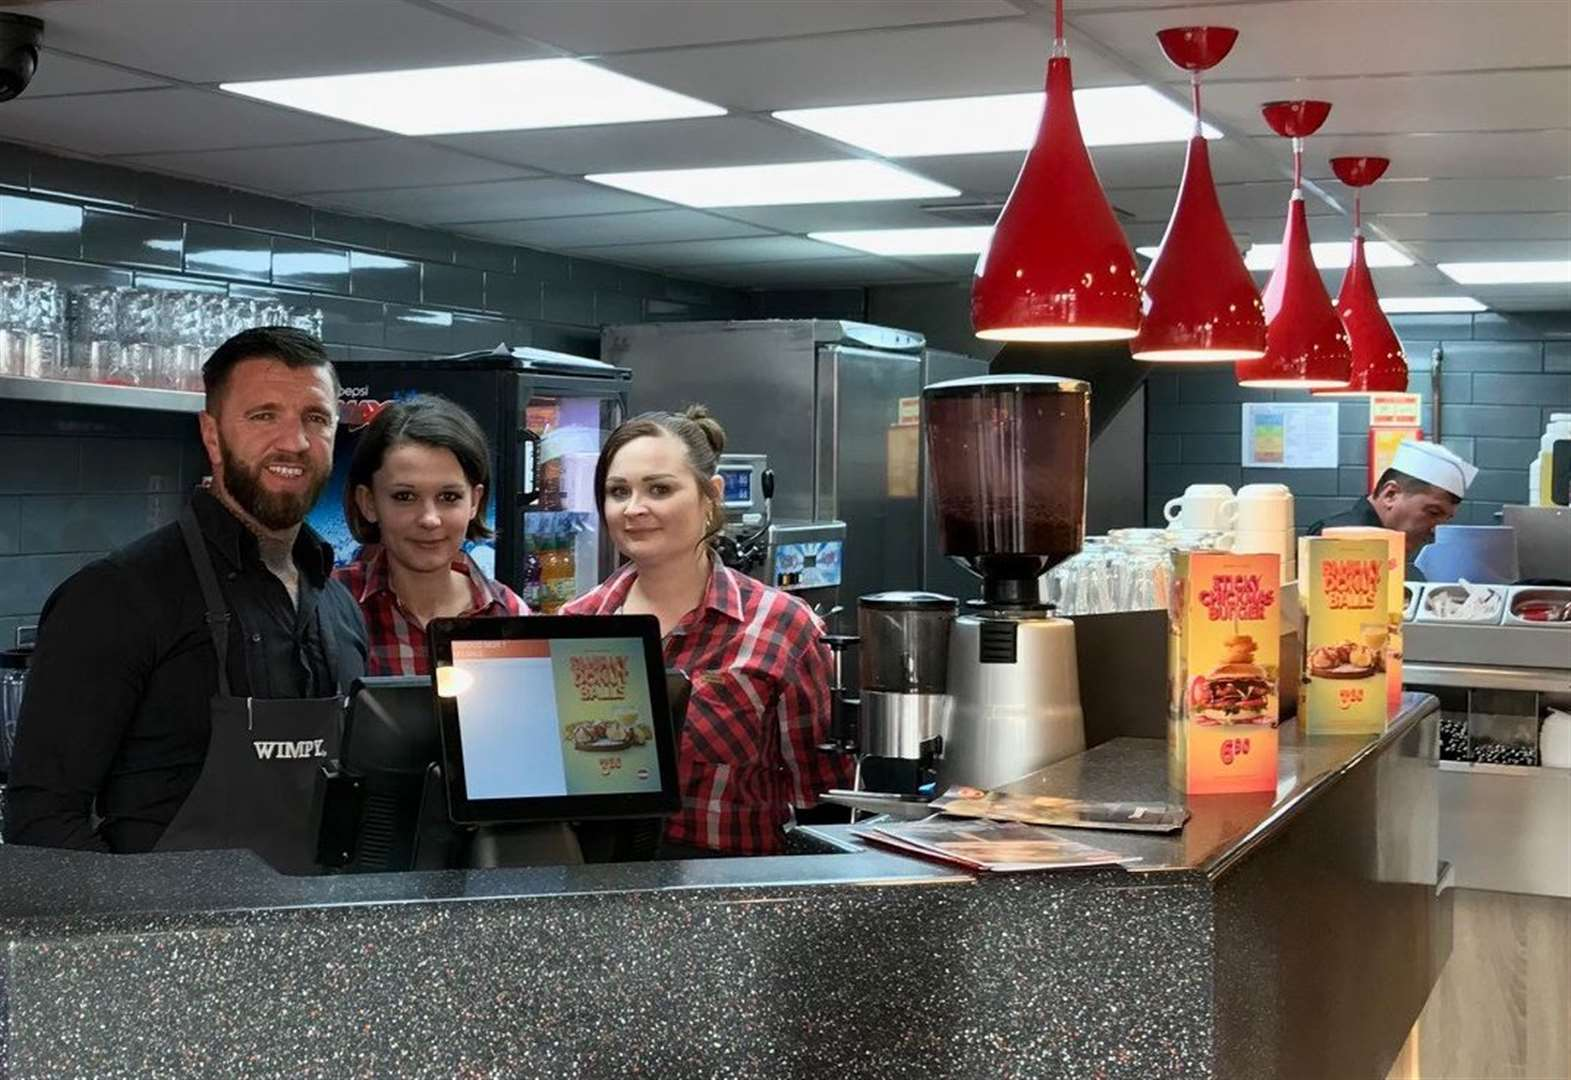 First look inside revamped Wimpy